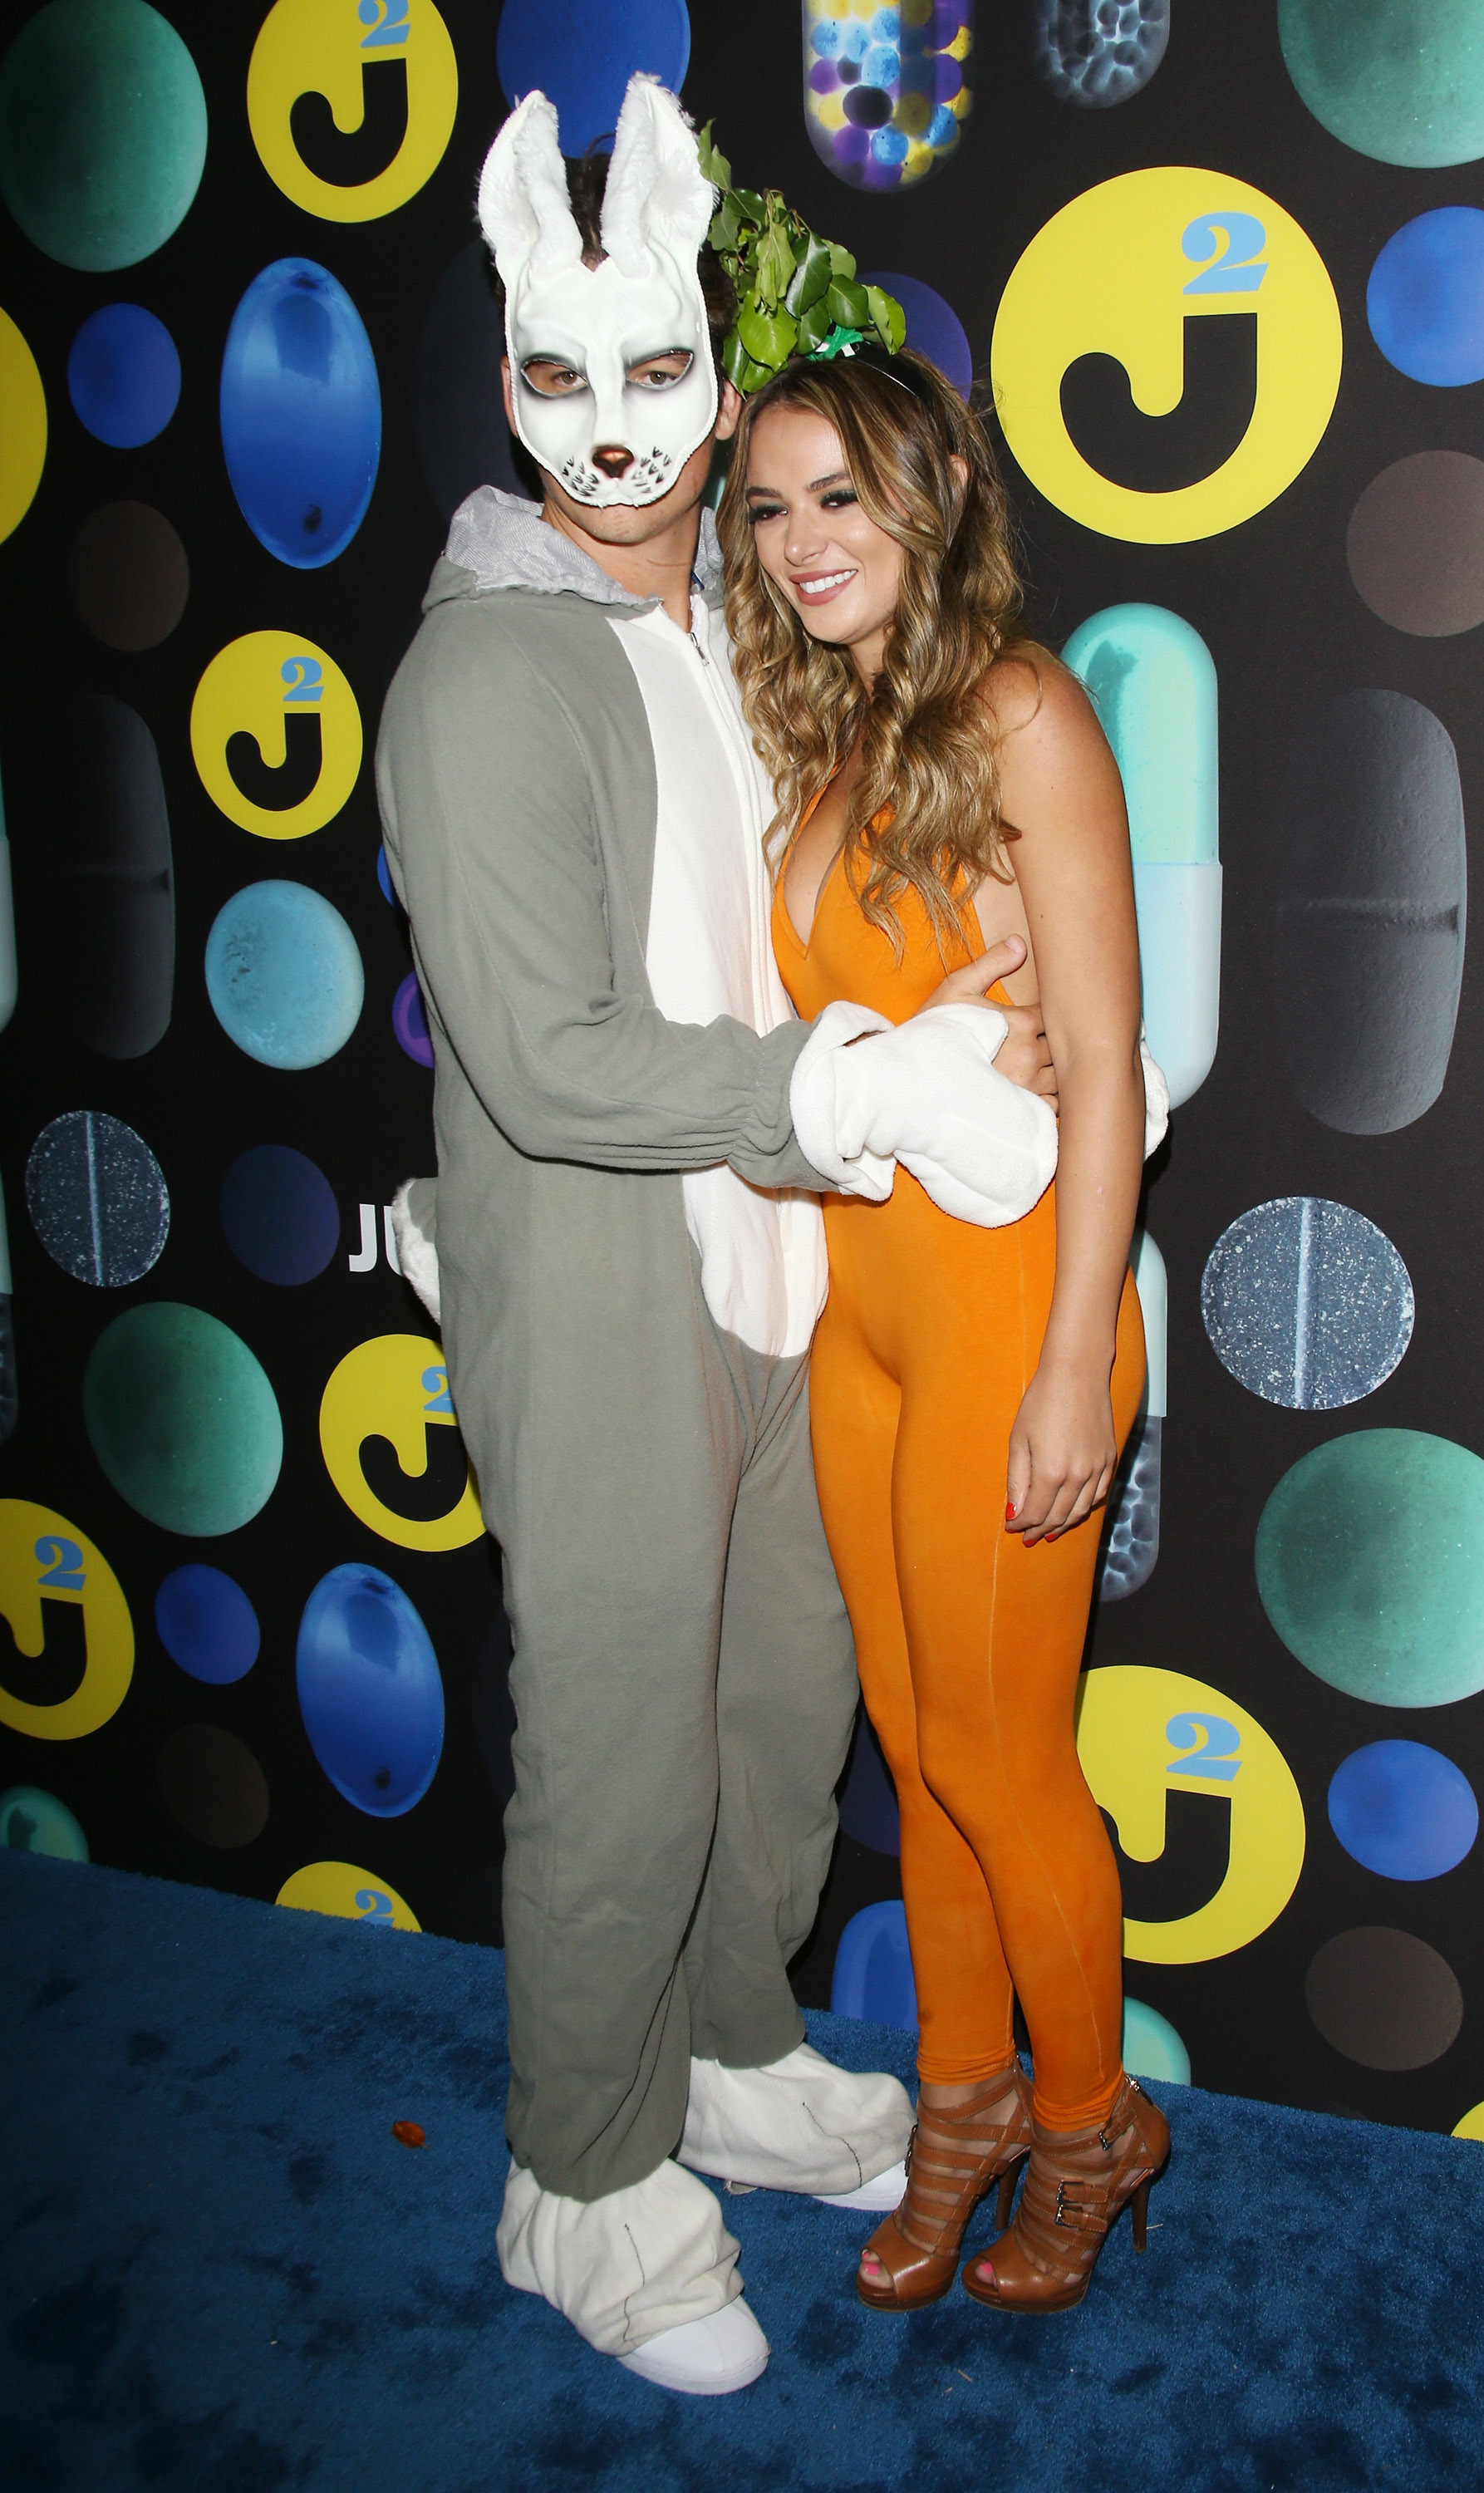 Miles Teller dressed as a rabbit while Keleigh Sperry donned a carrot costume at the  Just Jared Halloween Party held at No Vacancy in Los Angeles on Oct. 31, 2015.